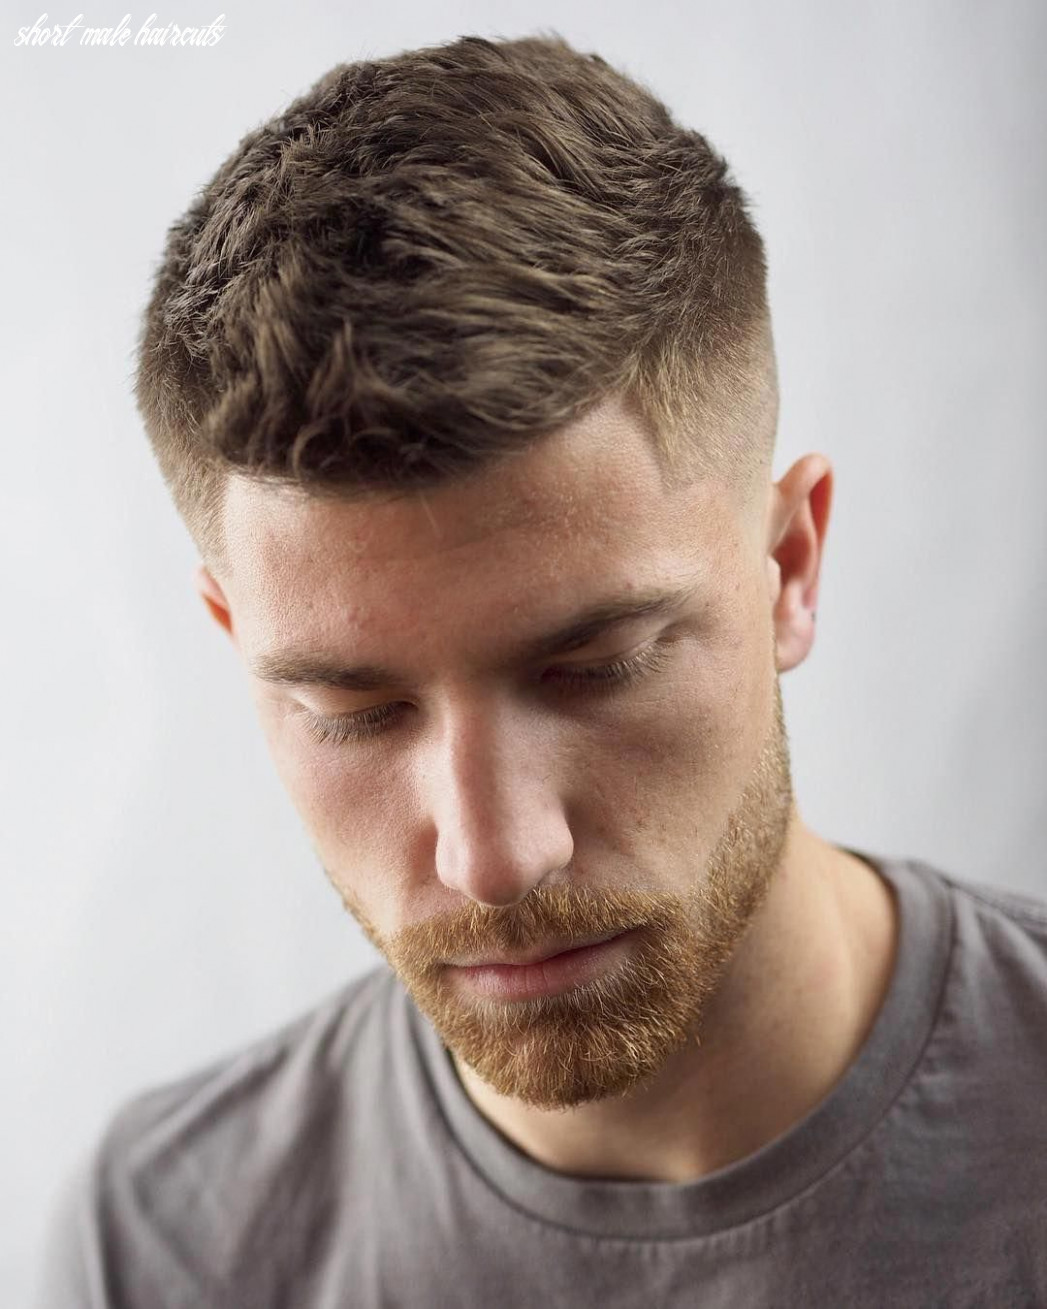 Choosing The Best Hairstyle For Men | Mens haircuts short, Mens ...